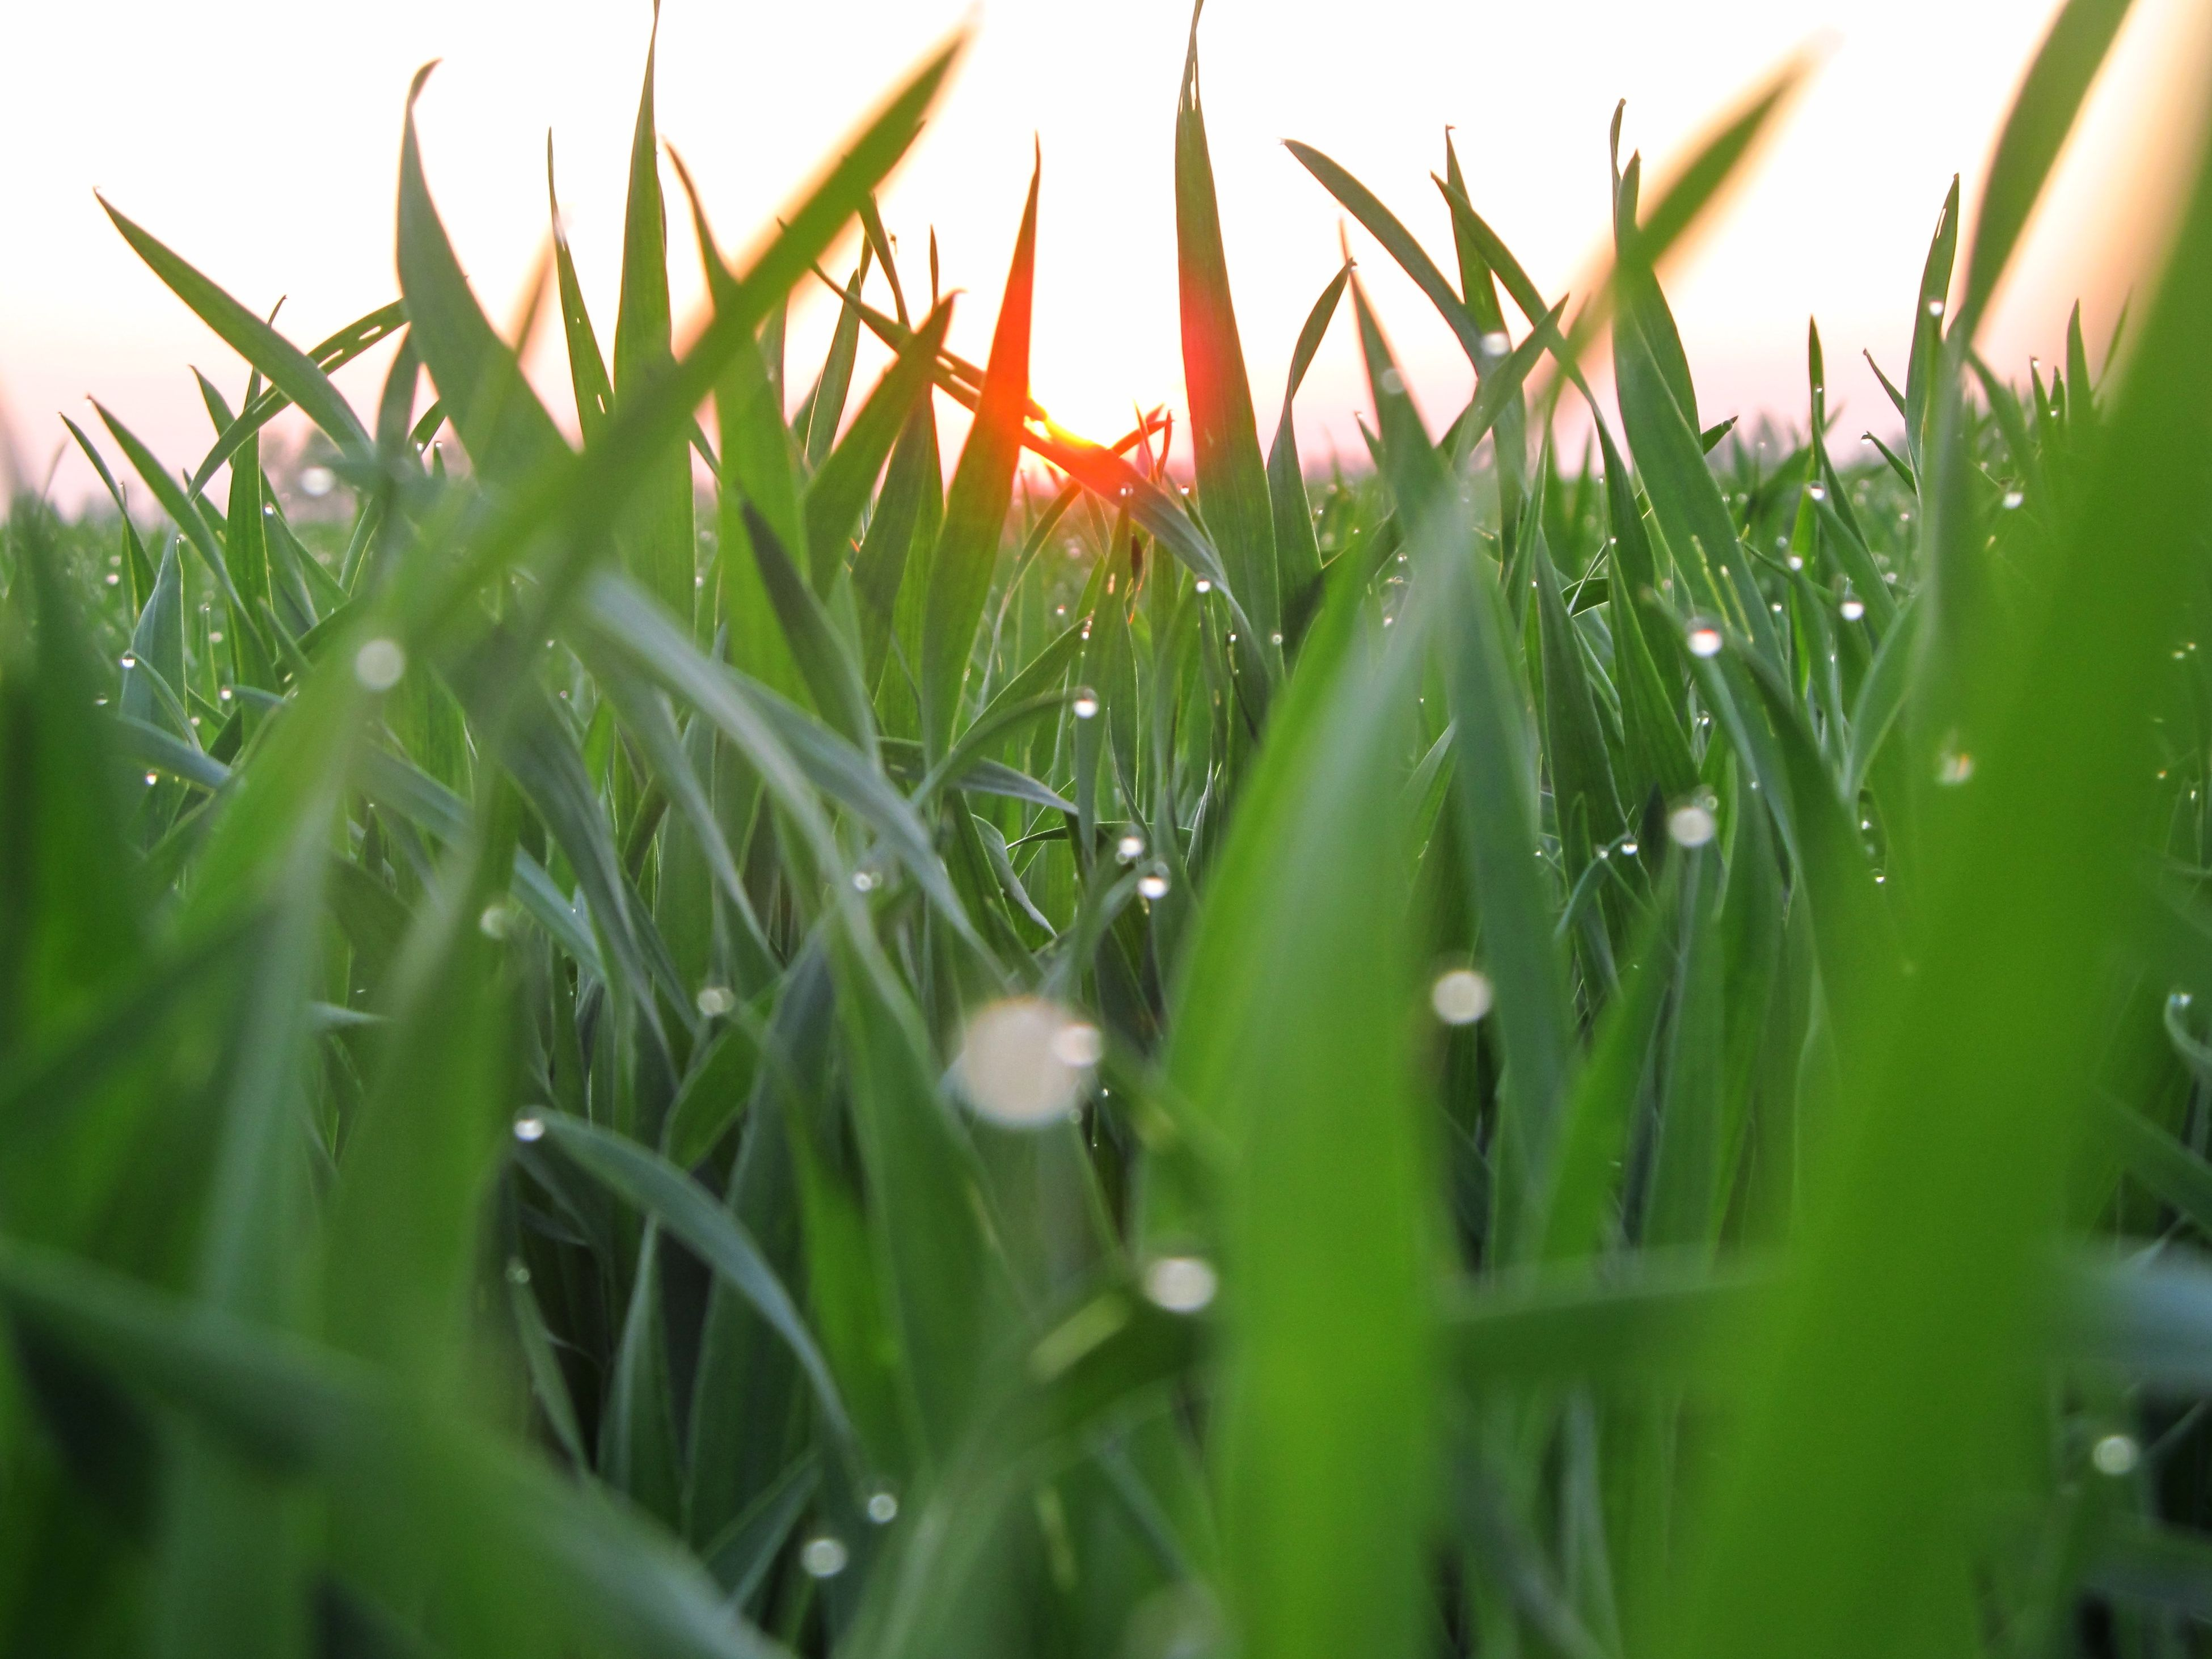 grass, growth, blade of grass, field, plant, green color, nature, beauty in nature, close-up, selective focus, tranquility, focus on foreground, sunlight, growing, outdoors, freshness, sunset, drop, no people, grassy